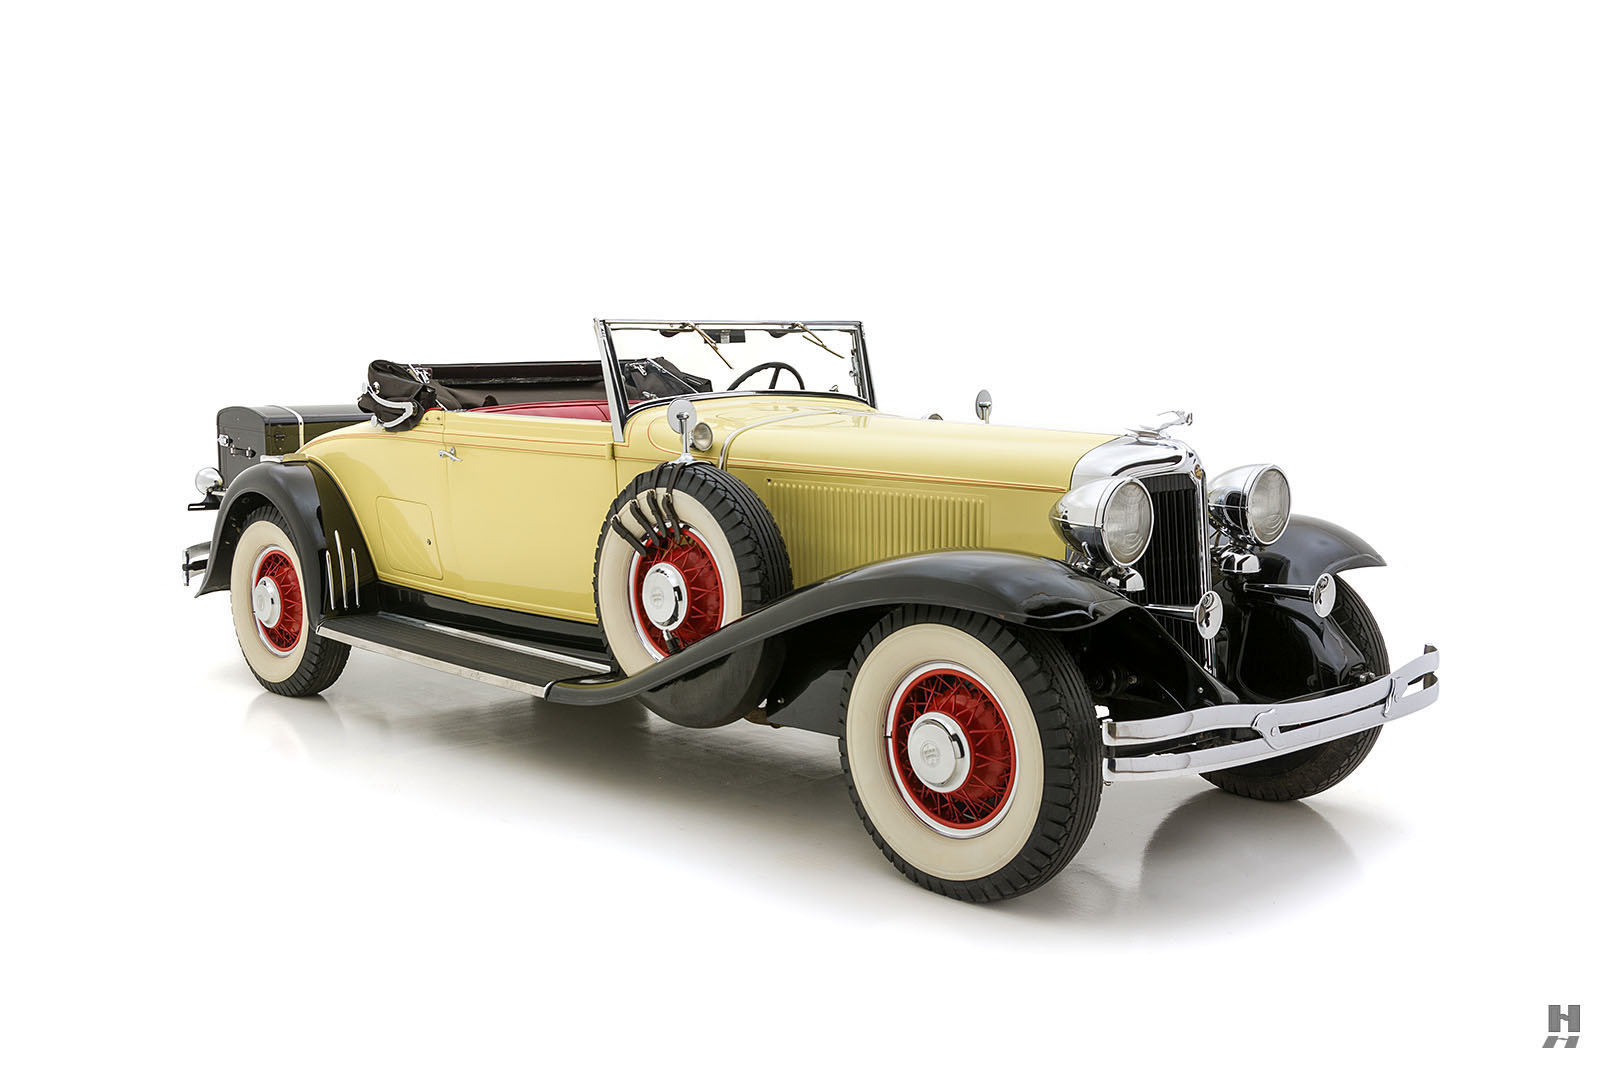 1931 Chrysler CG Imperial Convertible Coupe For Sale (picture 2 of 6)